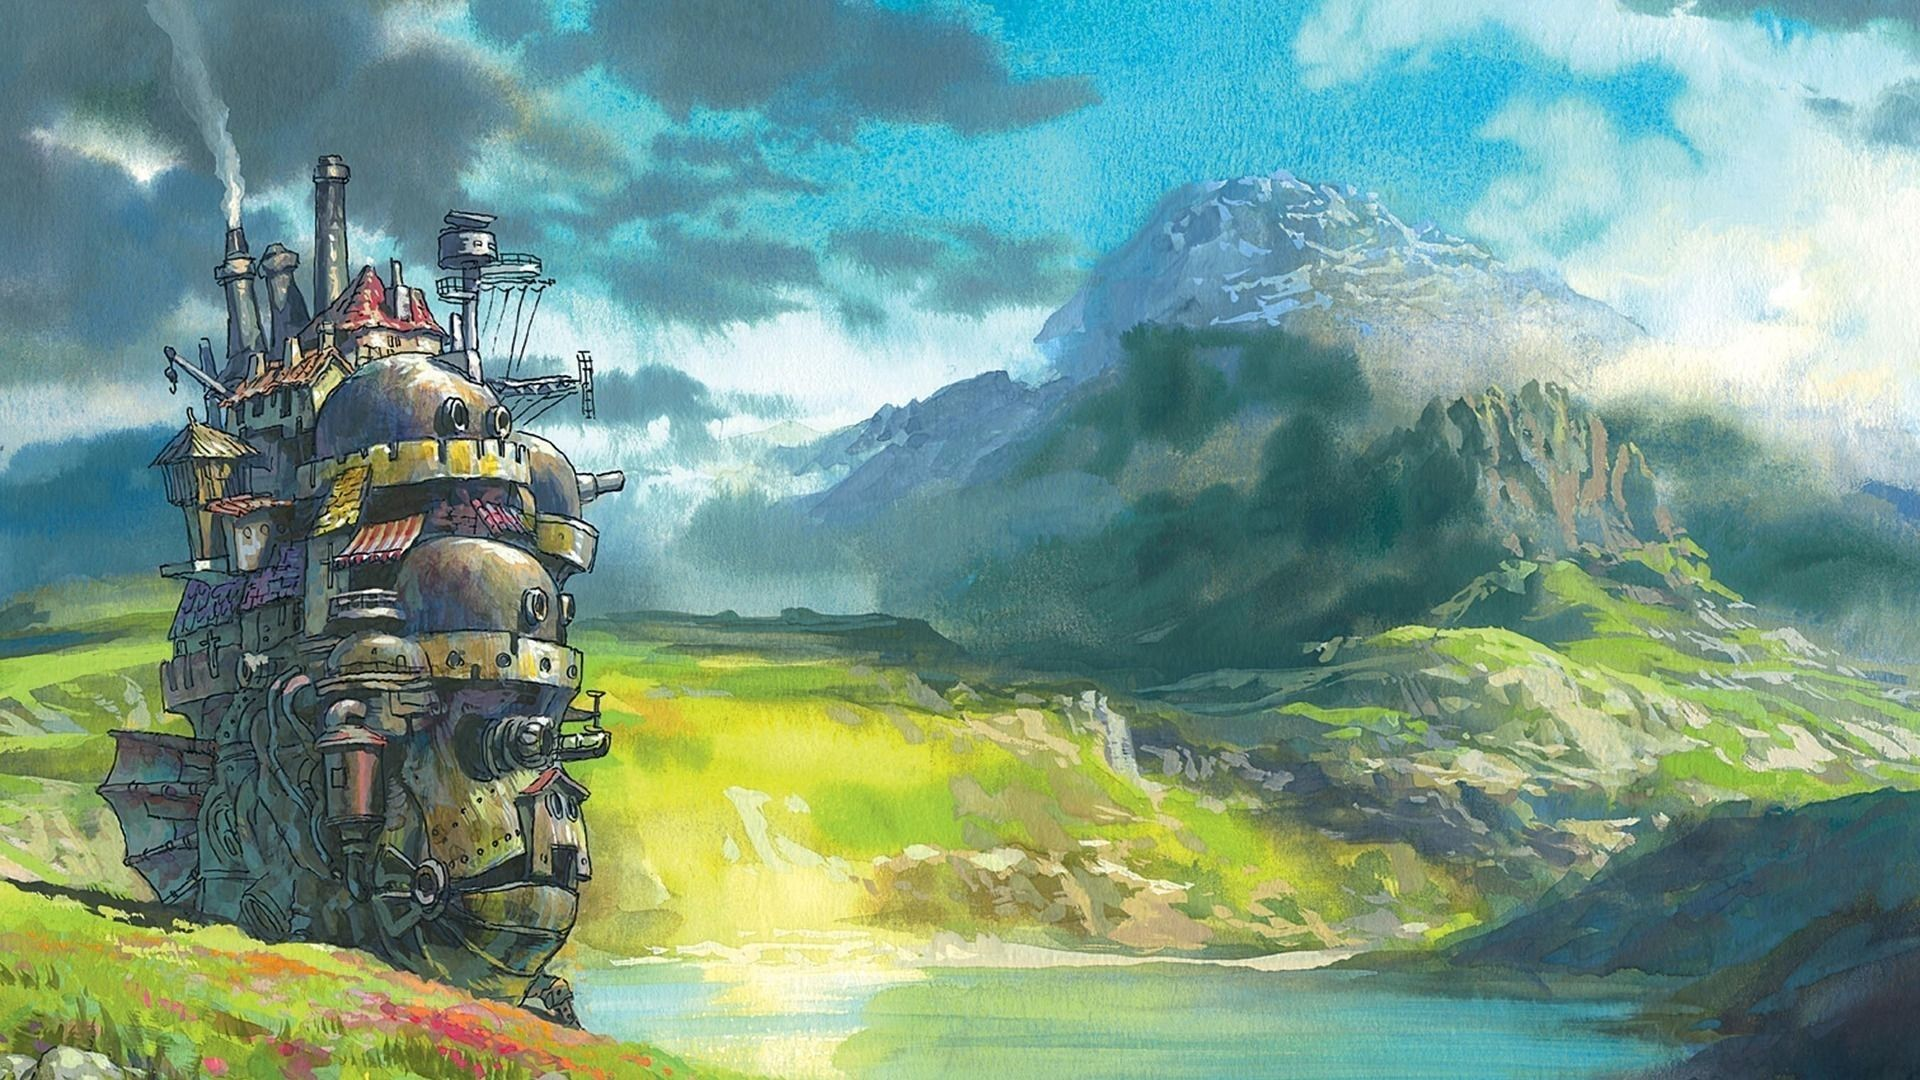 10 Top Studio Ghibli Wallpaper 1920X1080 Hd FULL HD 1920